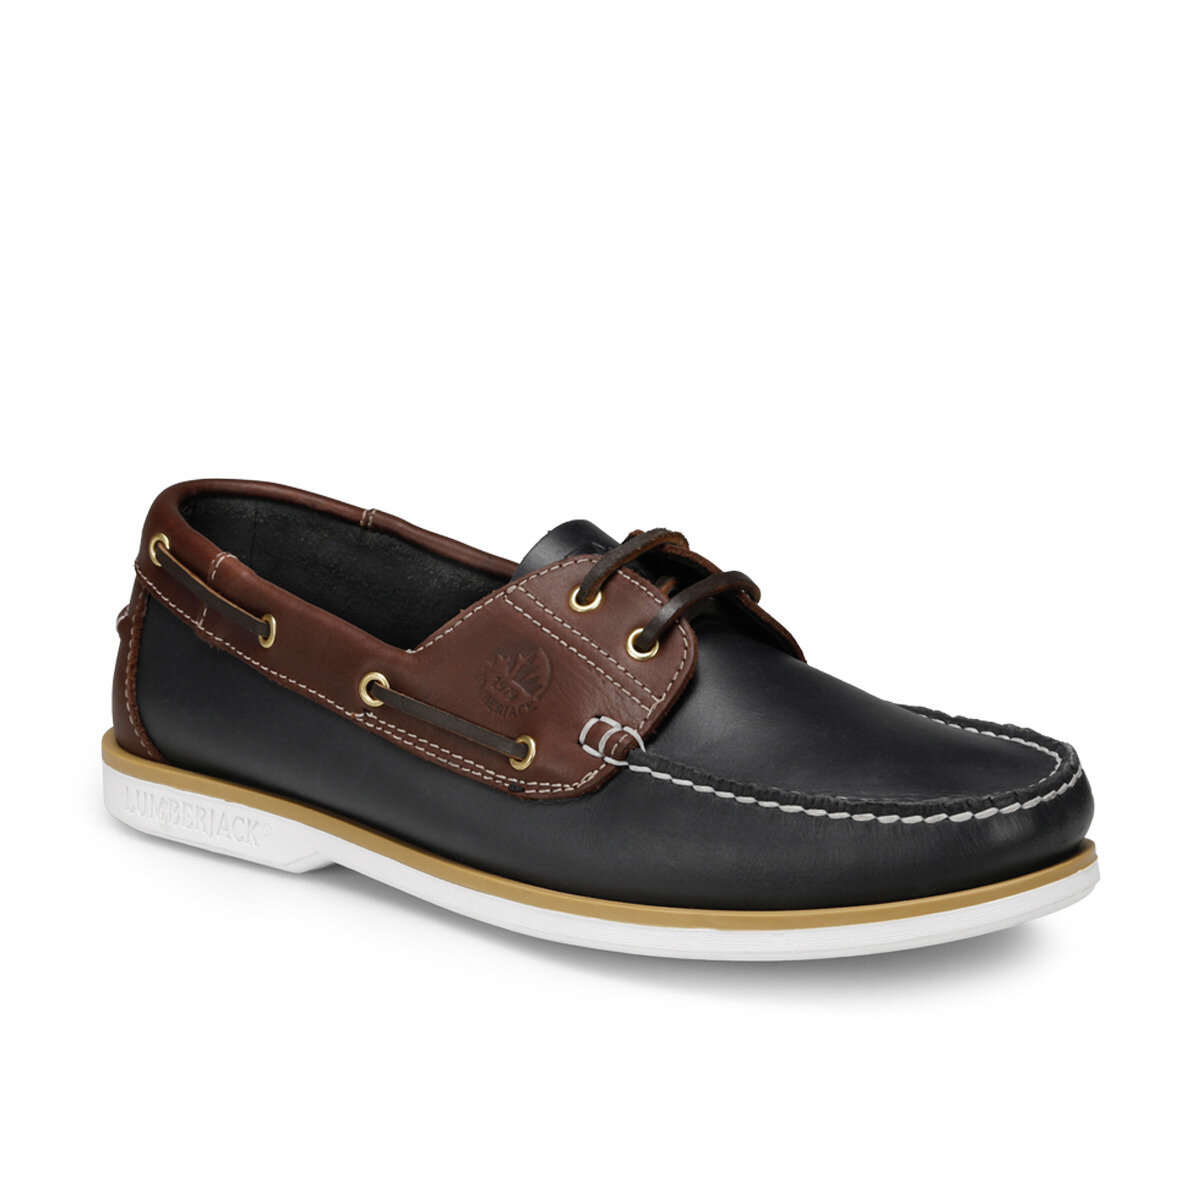 FLO NAVIGATOR Navy Blue Men 'S Shoes LUMBERJACK